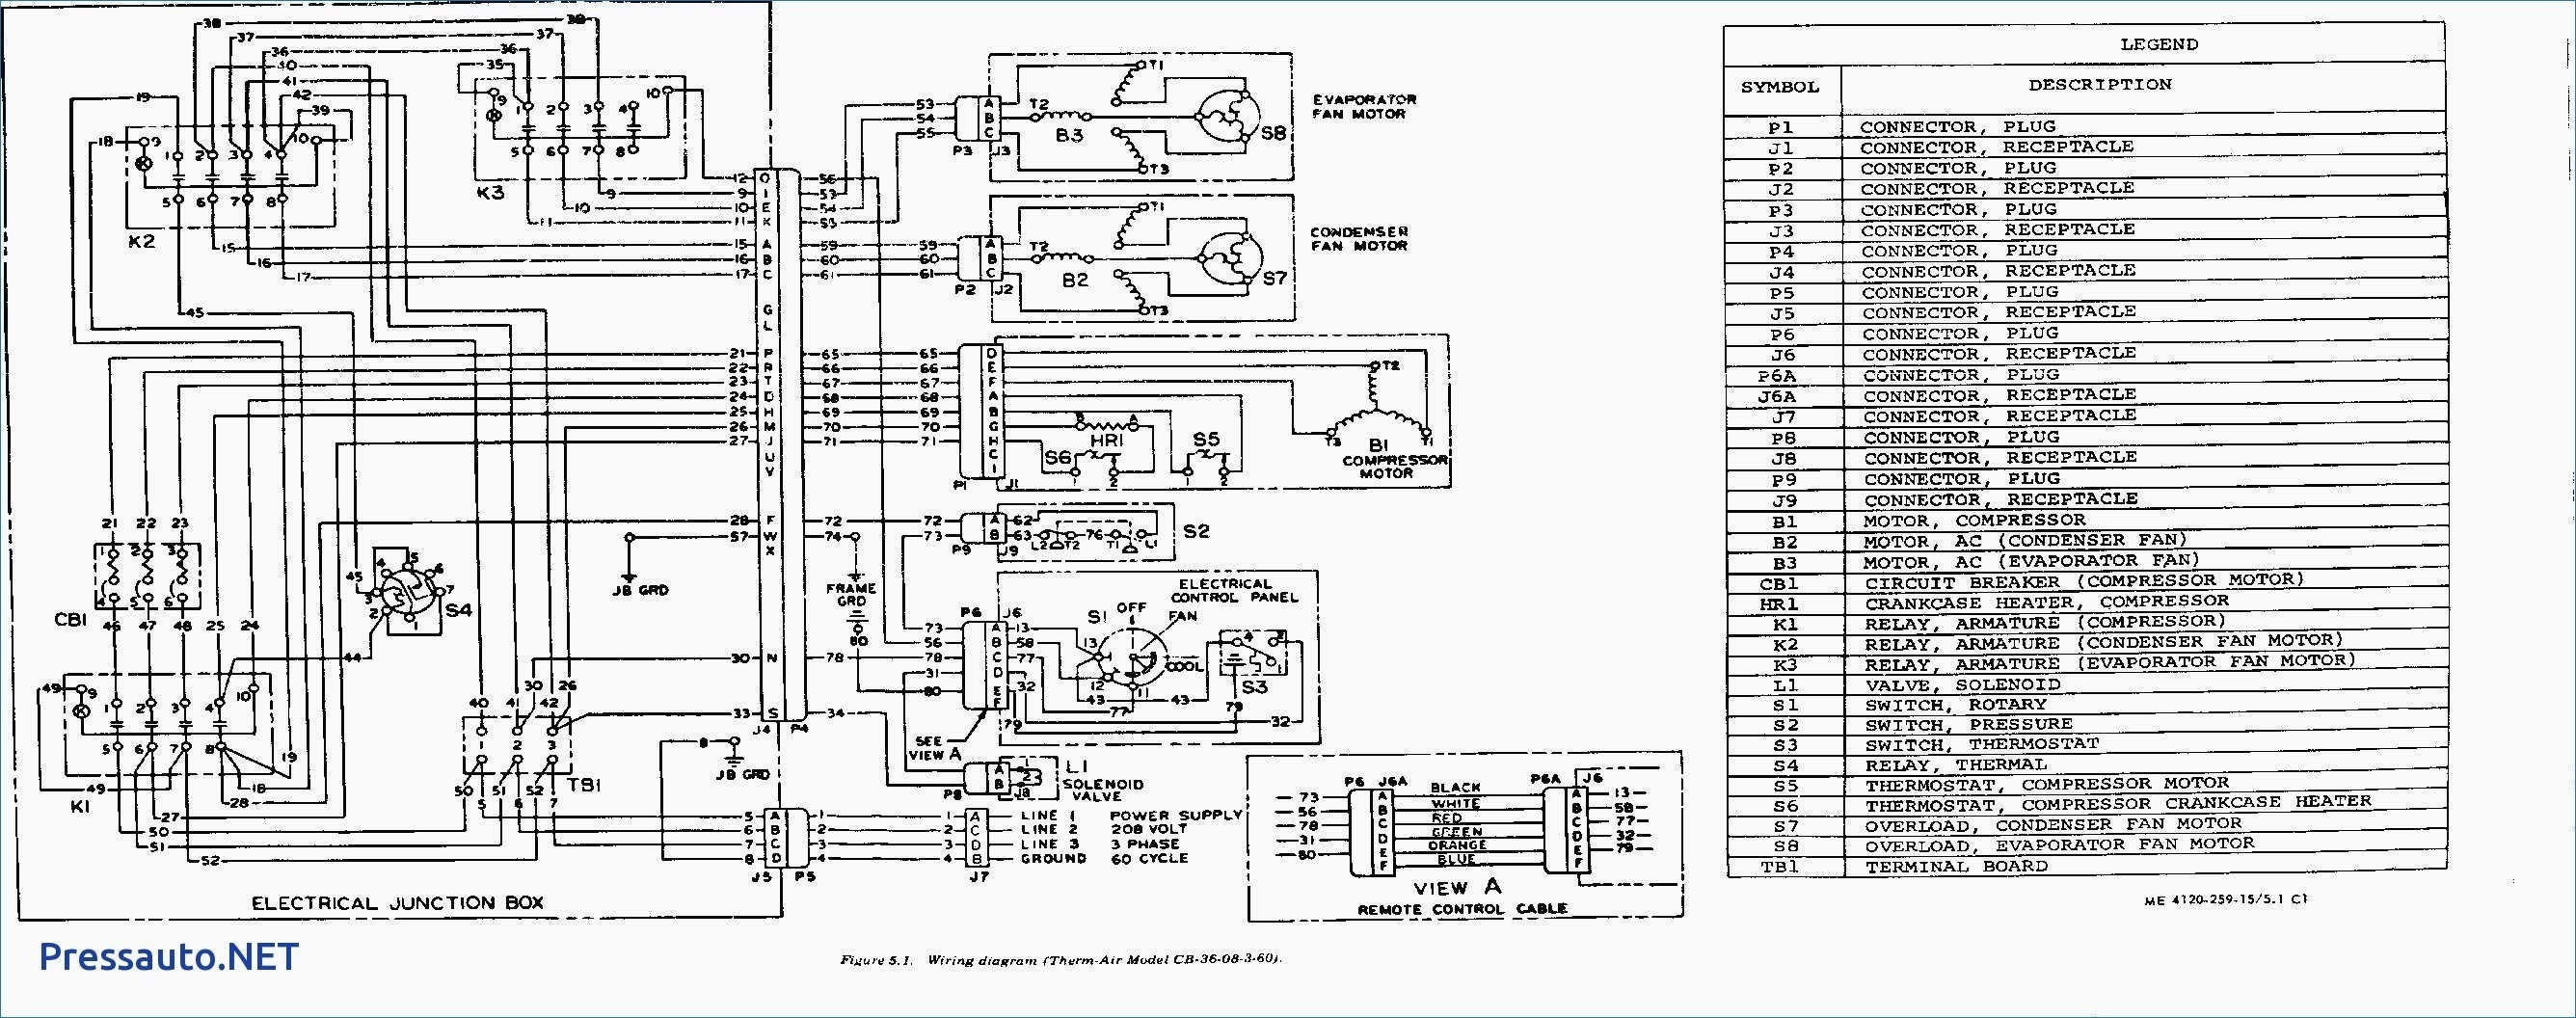 ac unit wiring diagrams contactor    wiring       diagram       ac       unit    free    wiring       diagram     contactor    wiring       diagram       ac       unit    free    wiring       diagram